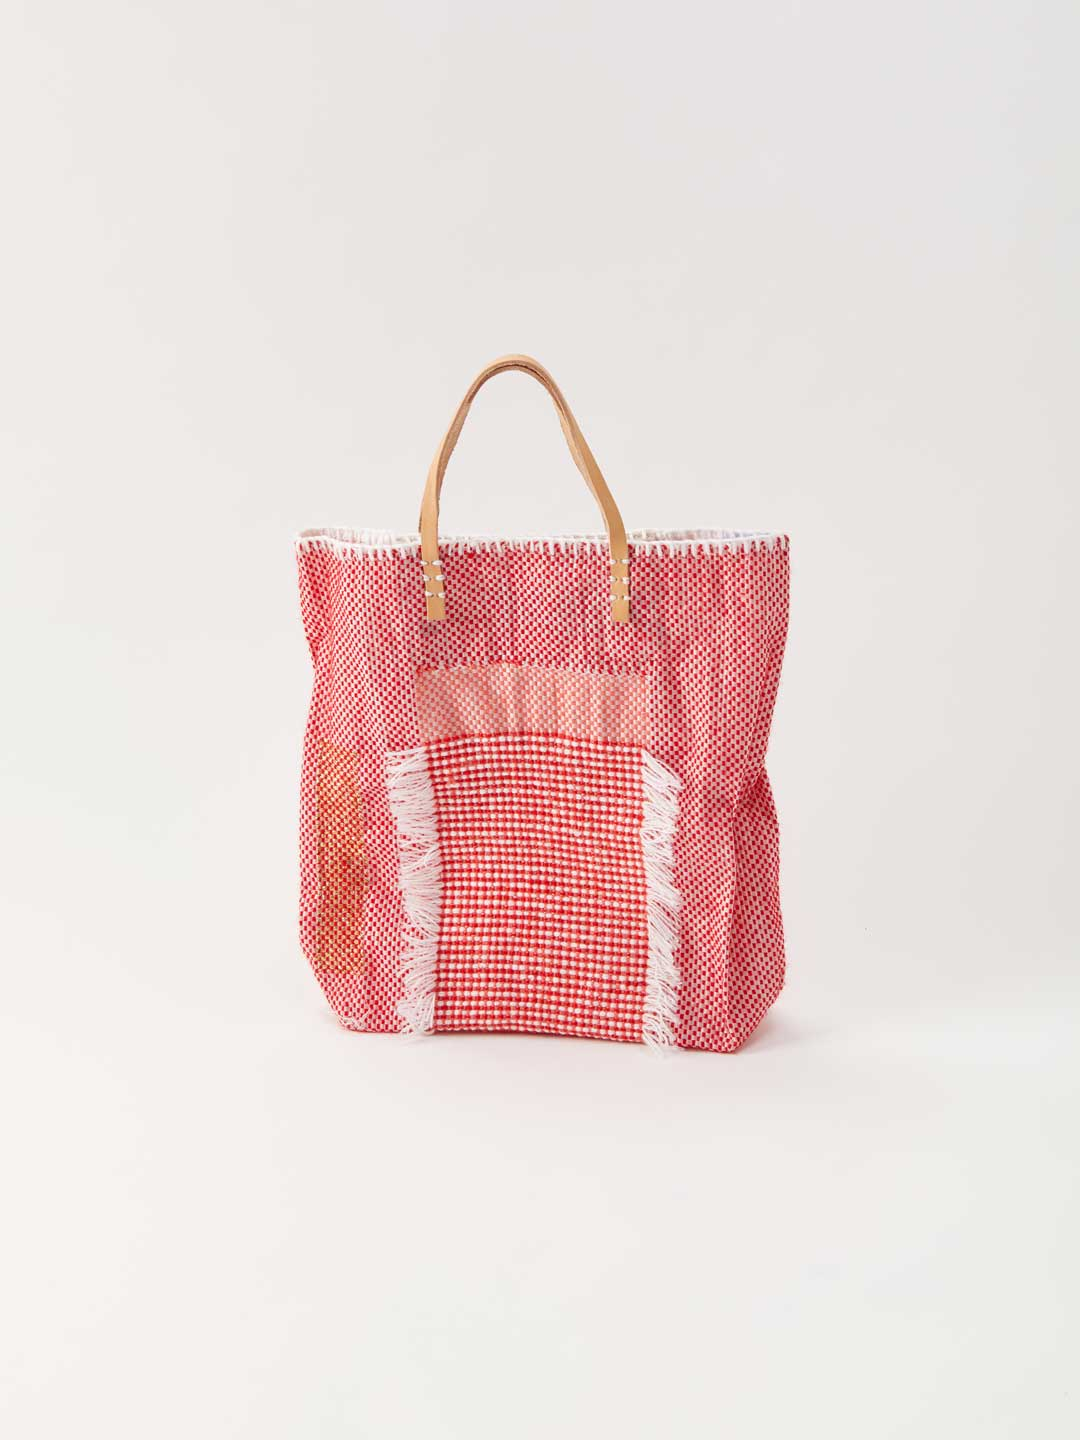 Recycled Food Tote Bag - Red